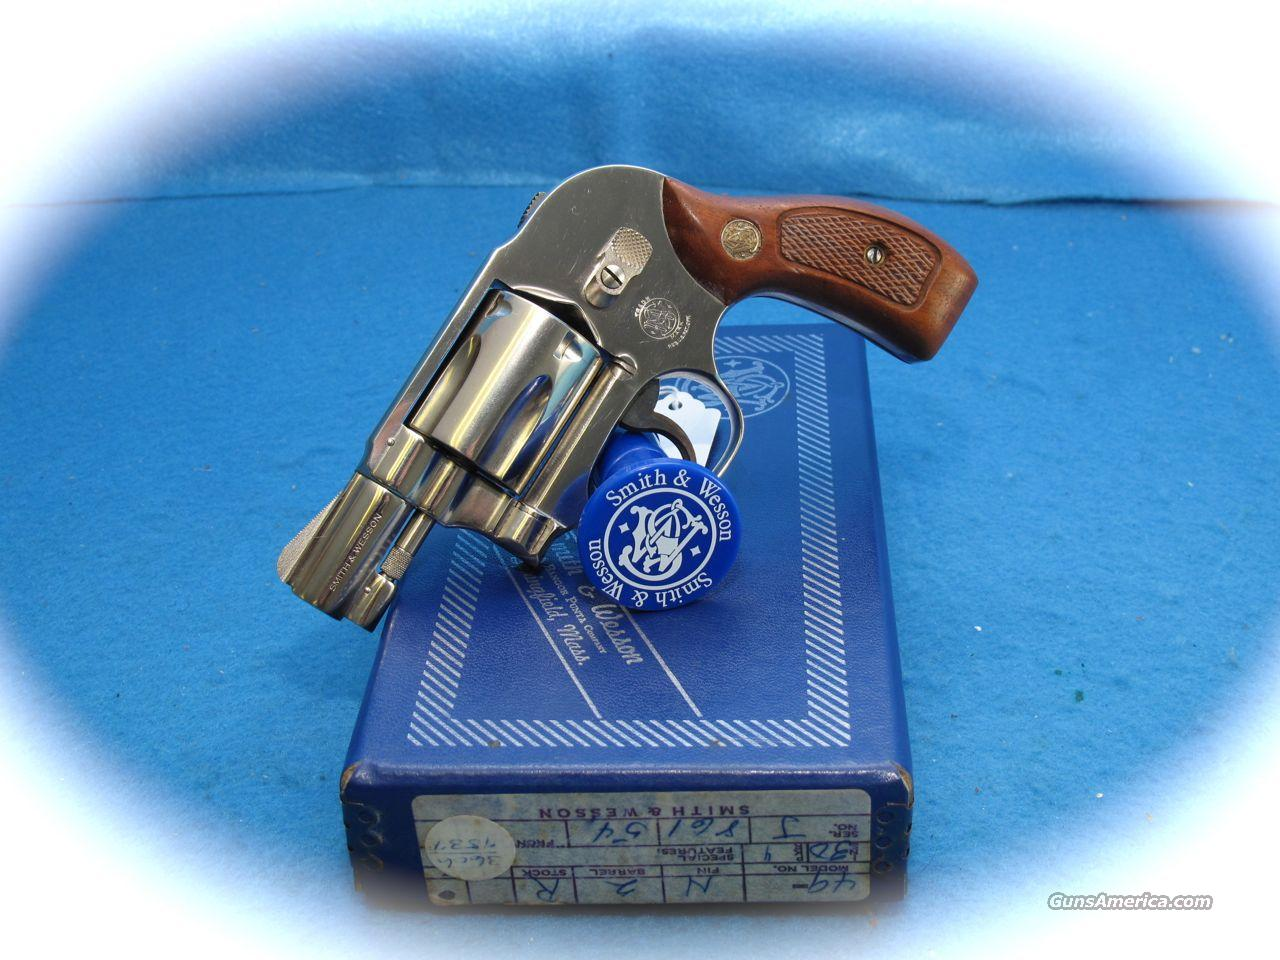 Smith & Wesson Model 49 Bodyguard Nickel 38 Spl 2 Inch **LIKE NEW**  Guns > Pistols > Smith & Wesson Revolvers > Pocket Pistols